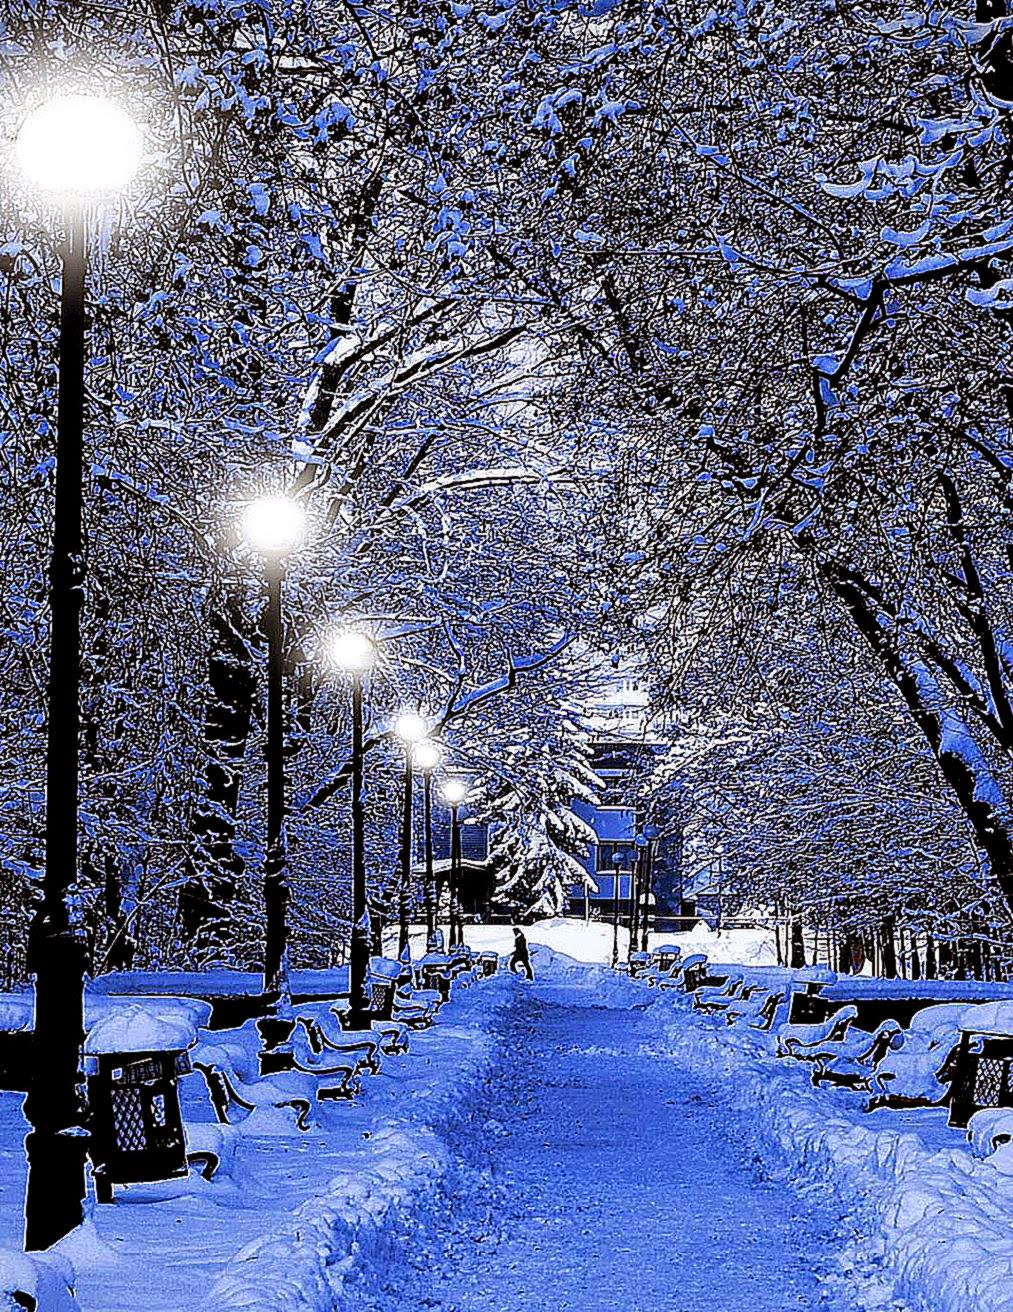 Winter Wallpaper For Iphone BinFind Search Engine